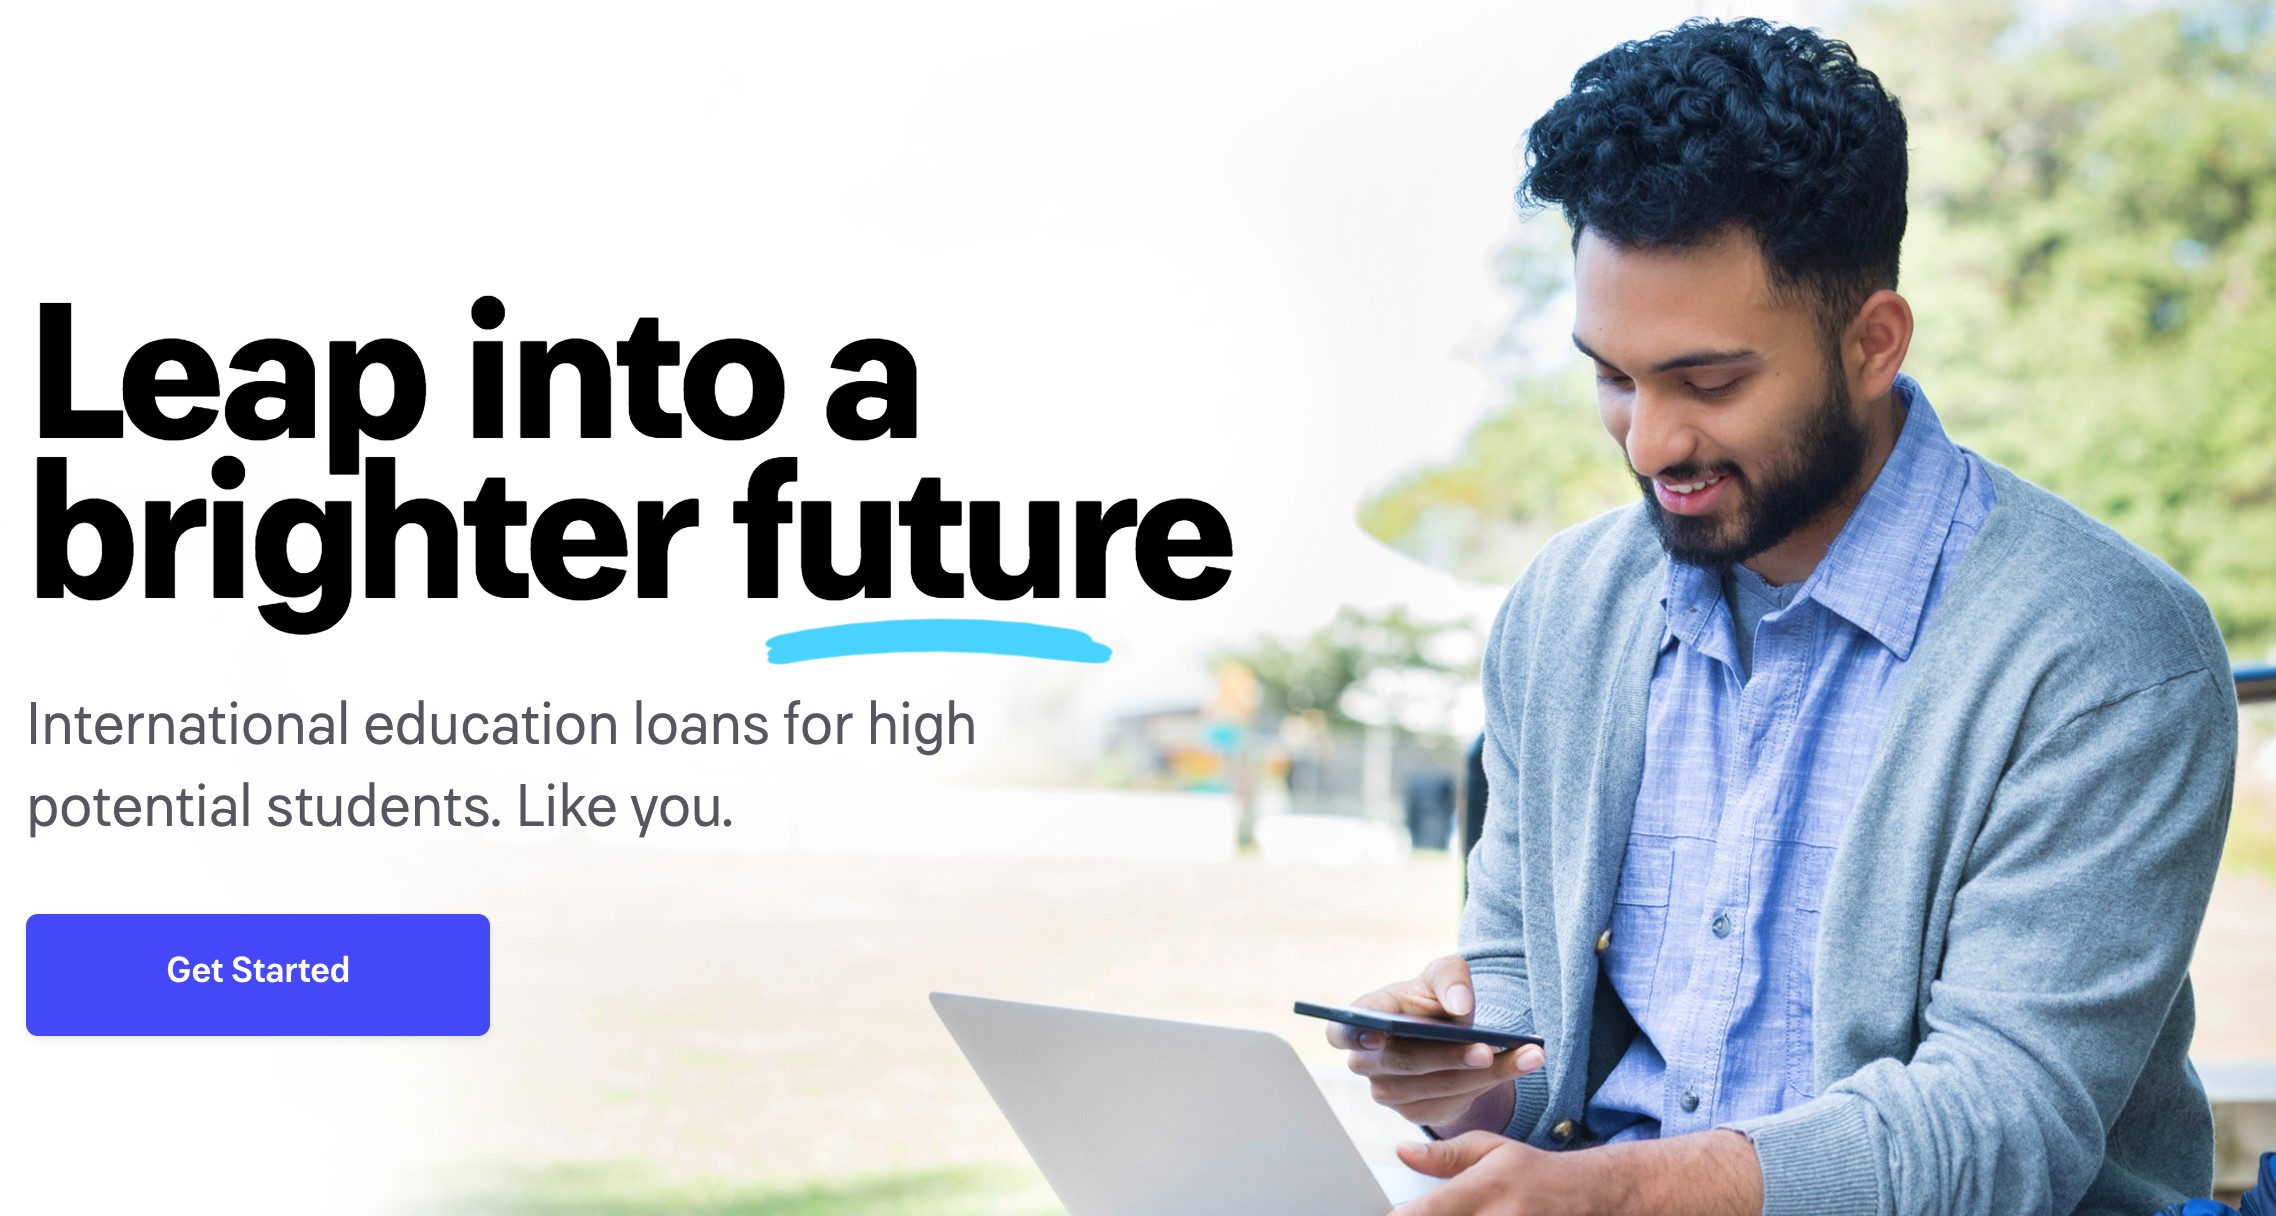 Leap Finance helps you get collateral-free student loans for international universities